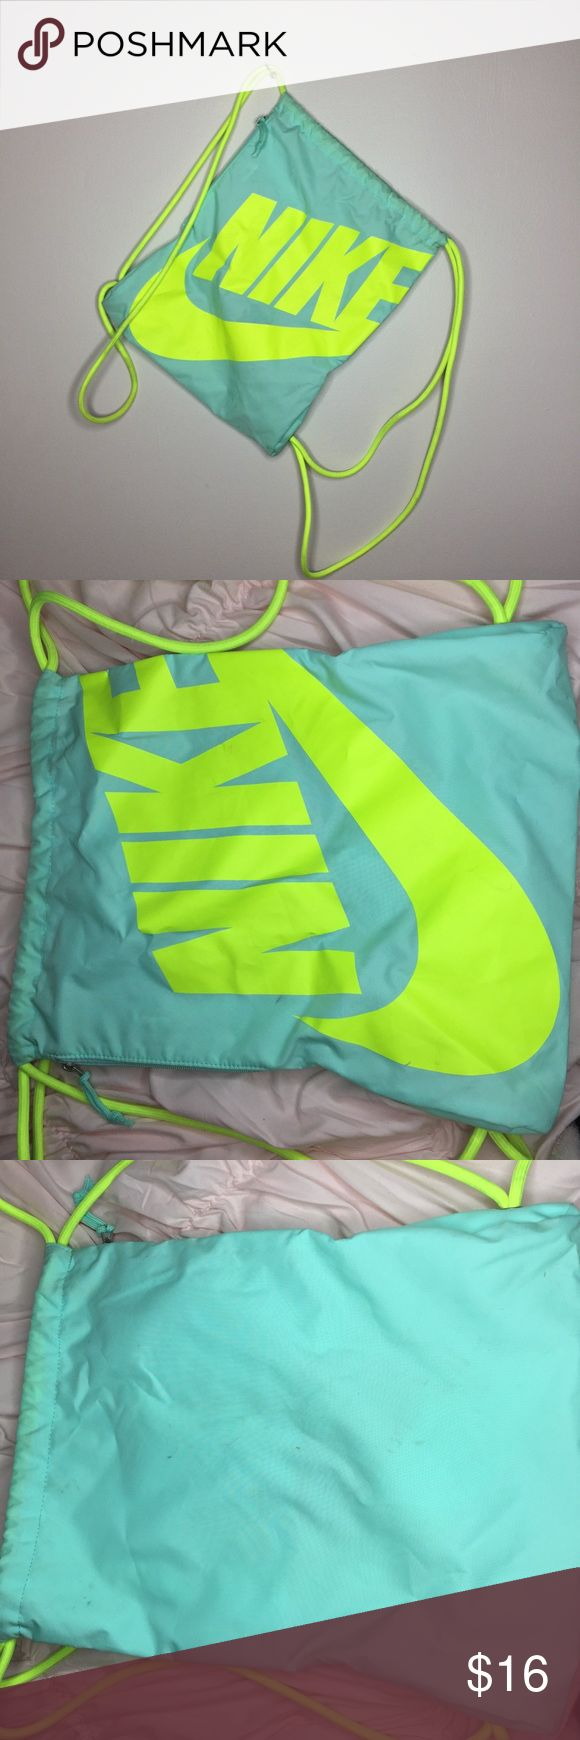 Nike Neon Sling Bag. In good pre-loved condition. Has some markings on the back of the bag.OFFERS WELCOME Nike Bags Backpacks